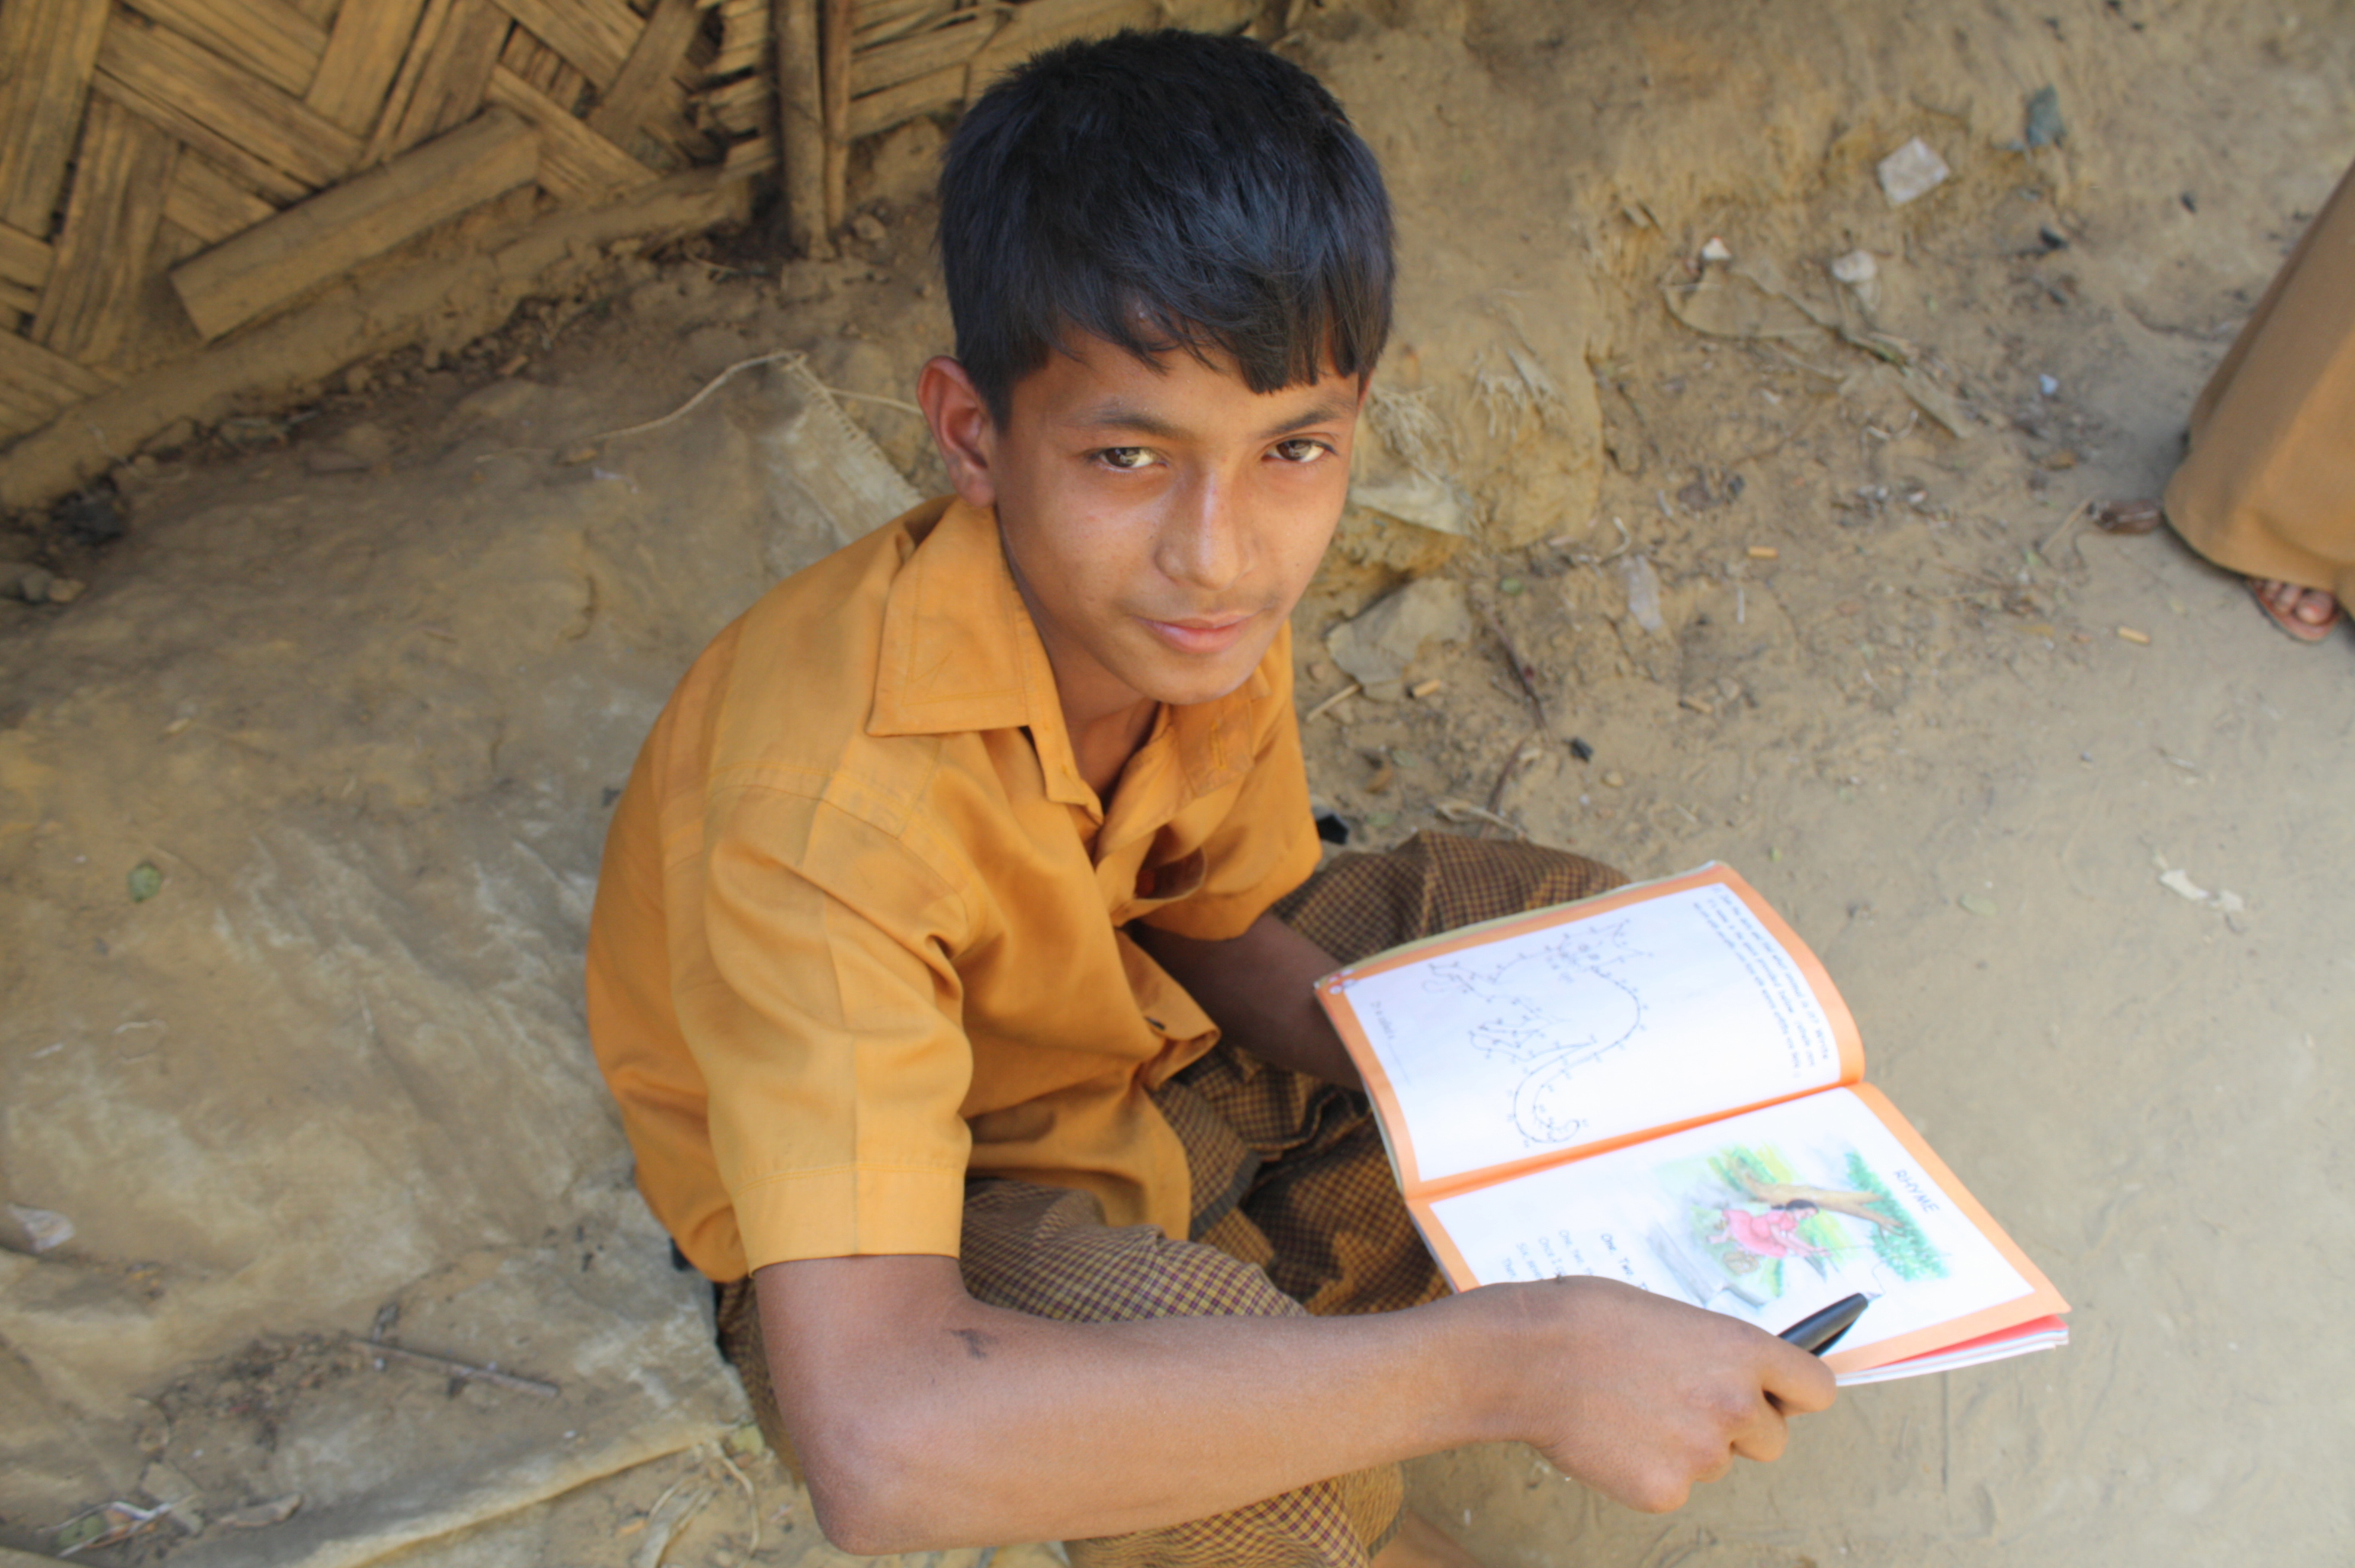 With no access to education after primary school at the Kutupalong camp, one of two official camps set up to house 28,000 documented Rohingya refugees, many young people study on their own or in groups